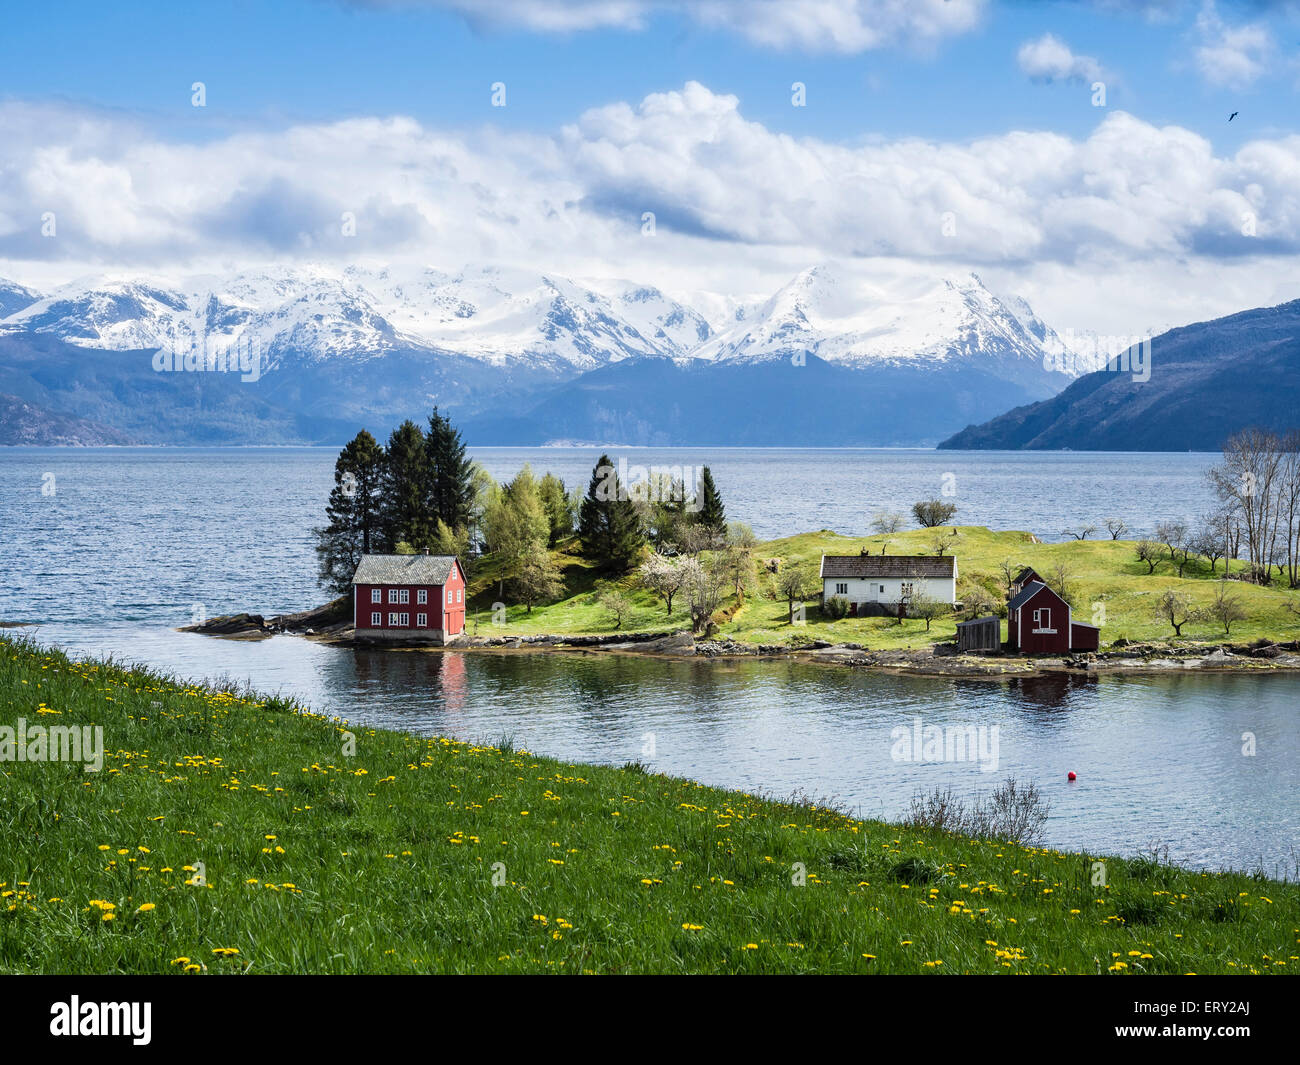 Typical red house on an island in the Hardangerfjord, near Strandebarm, Hordaland, Norway - Stock Image